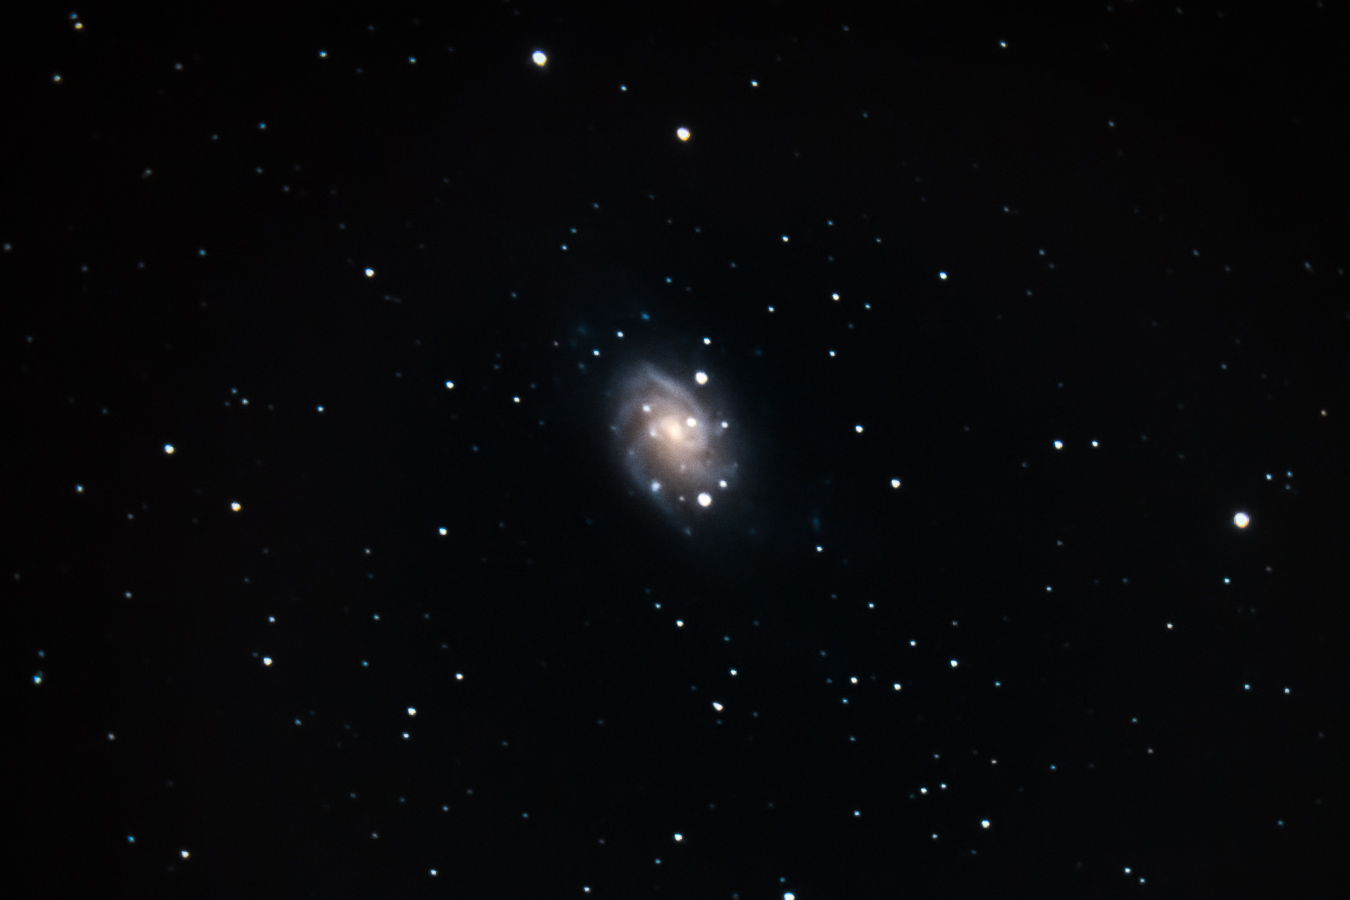 NGC 2403   , a spiral    galaxy    8 million light years away in the obscure constellation    Camelopardalis   . When you view this image, you're looking 8 million years back in time. Captured with my    Celestron    8SE    telescope    somewhere in nowhere between the towns of Santa Barbara and Santa Ynez the night of December 8 2018.